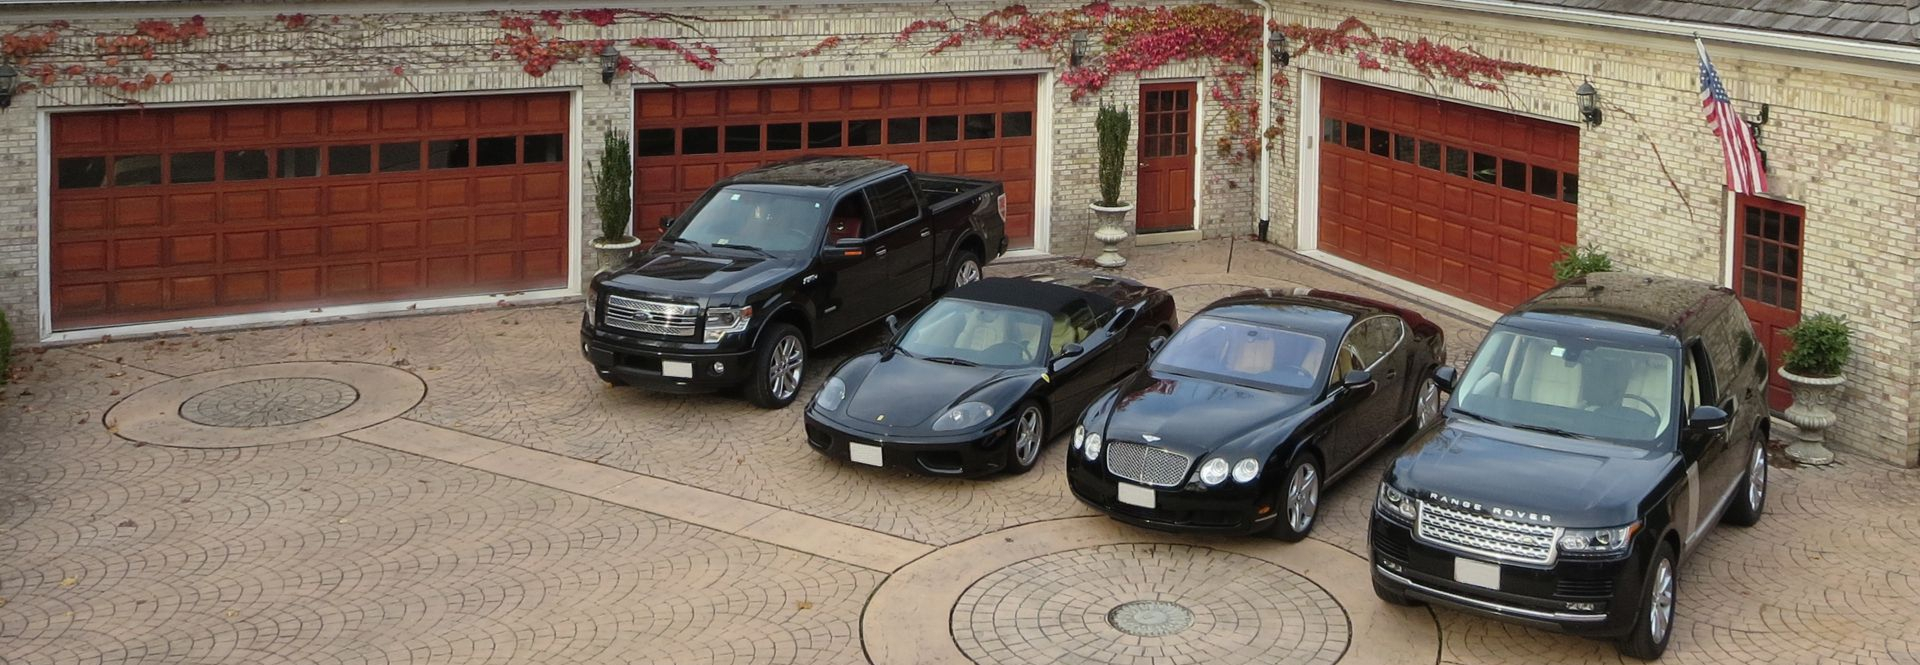 Car Garage For Rent >> Garage Pointer Rent Your Garage Or Store Your Classic Cars